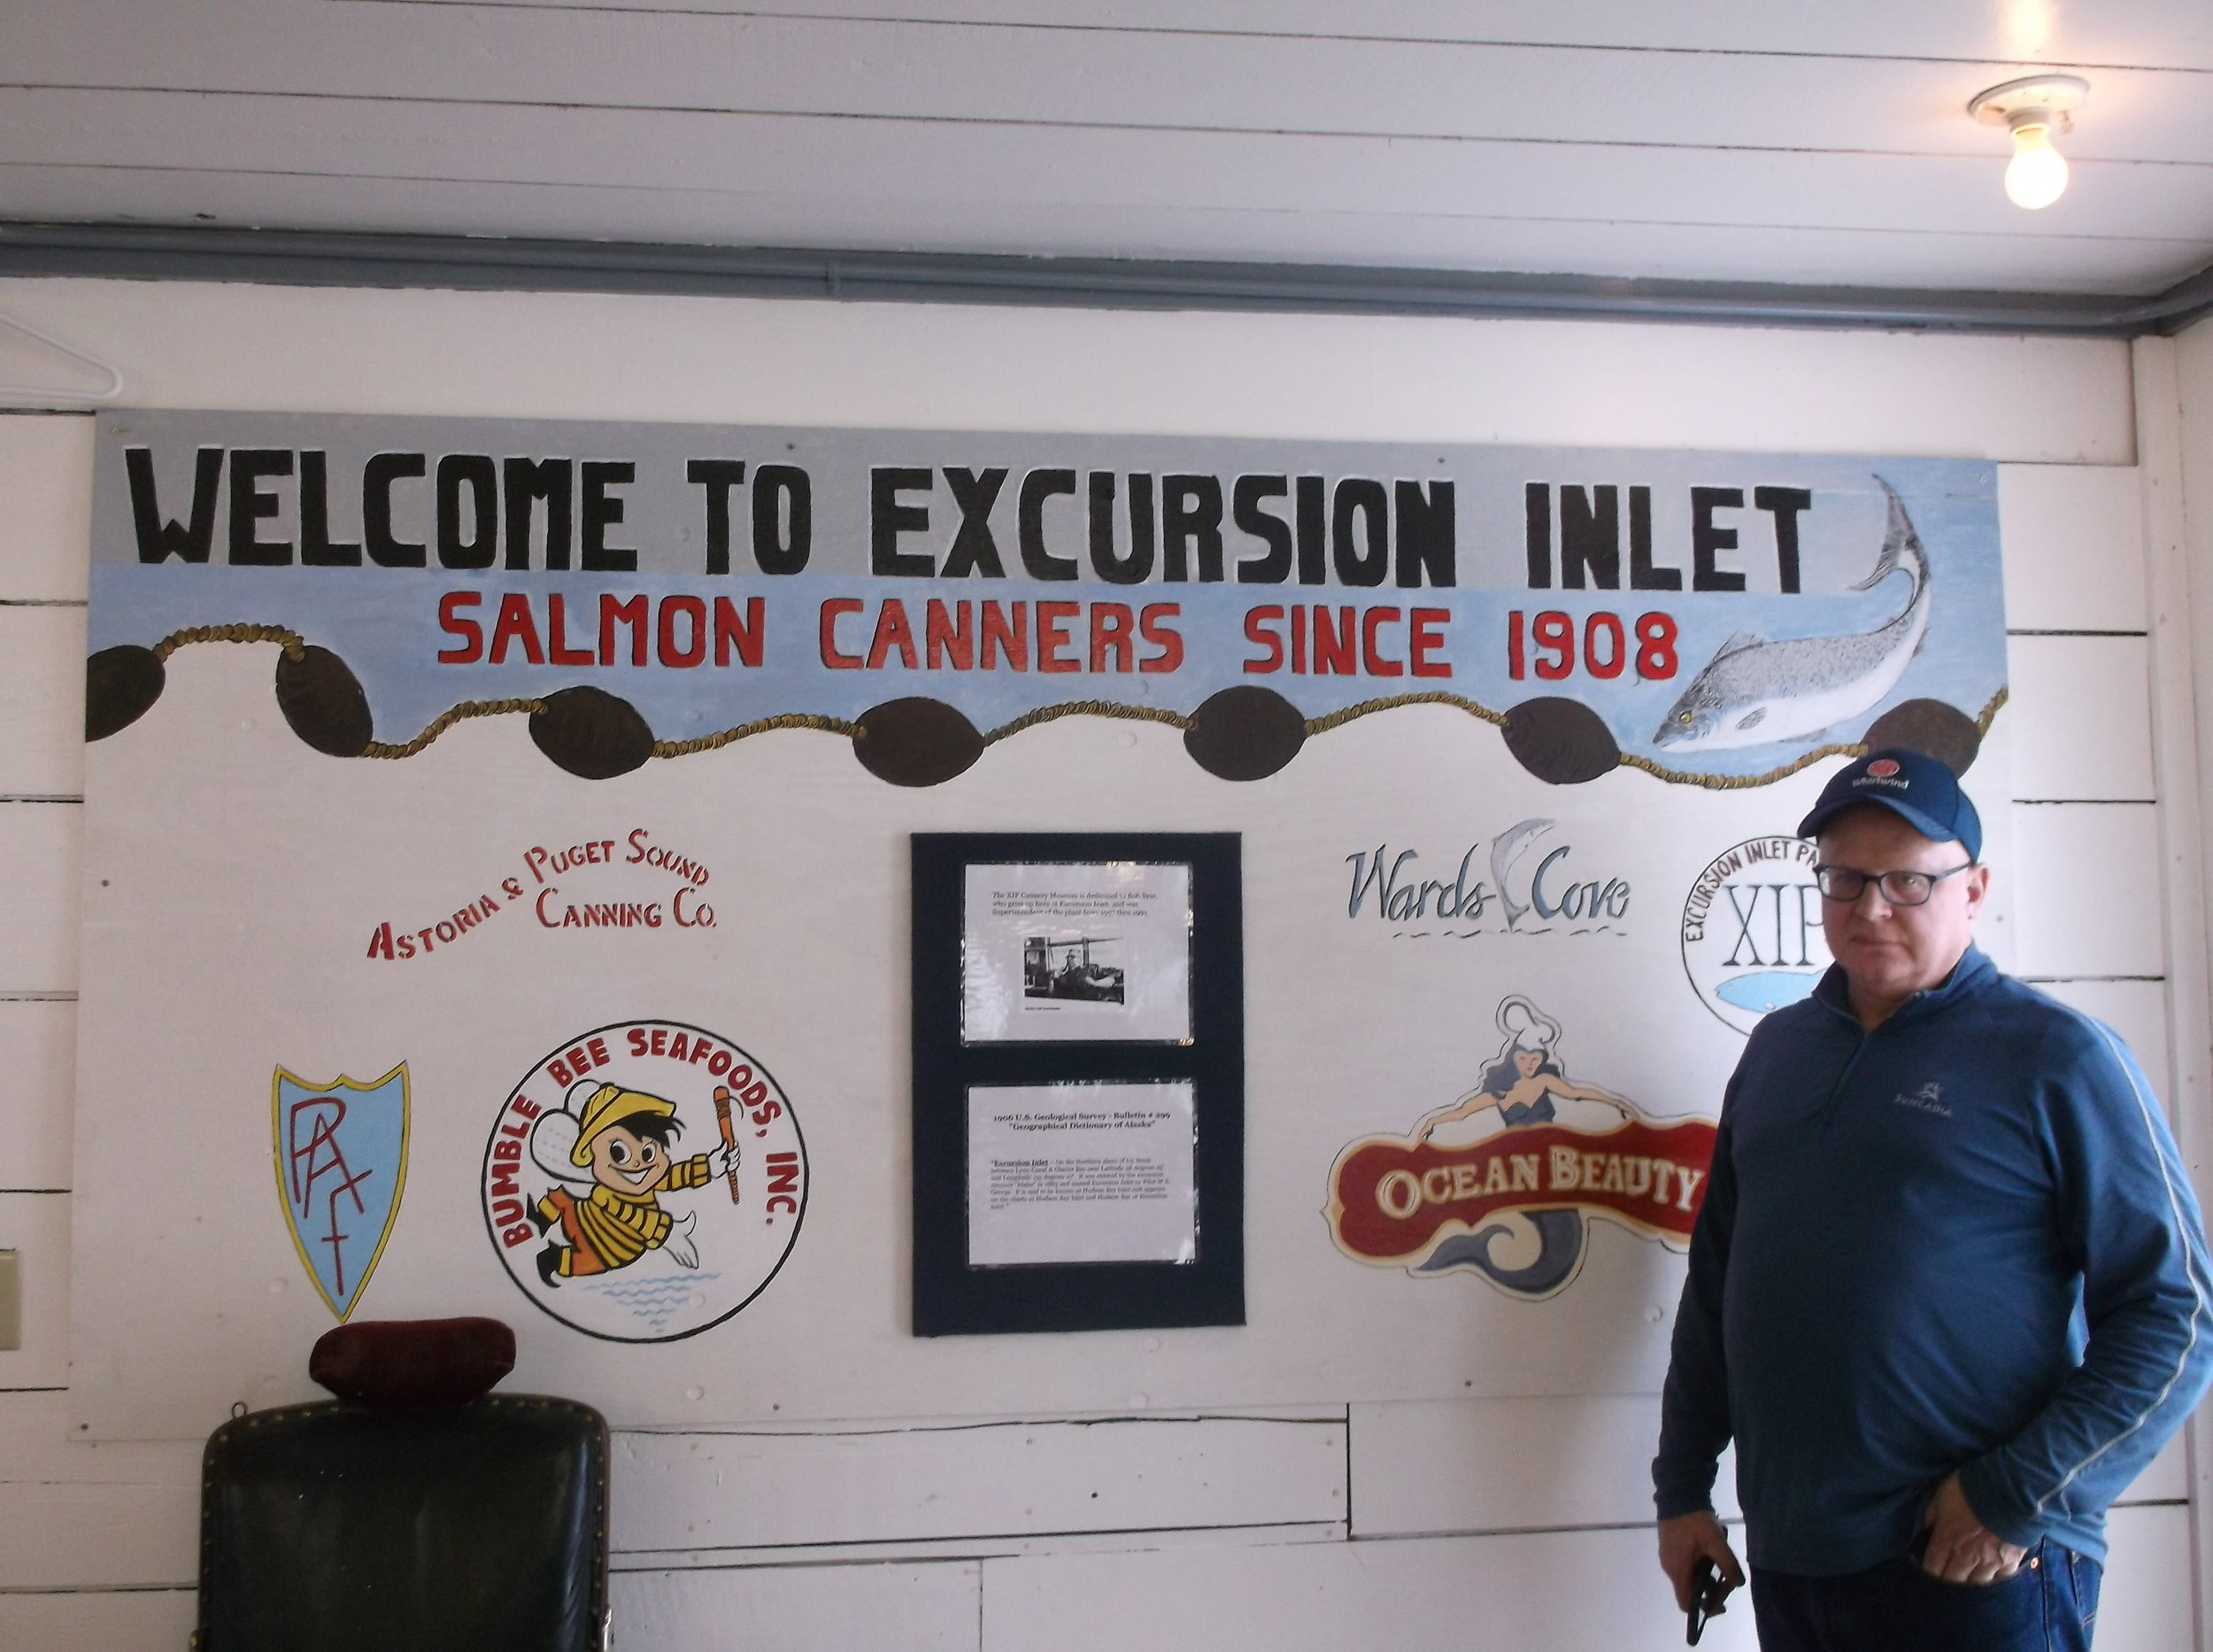 Excursion Inlet plant manager Tom Marshall stands within the museum that he developed on site. The sign next to him shows the cannery's owners over the years.